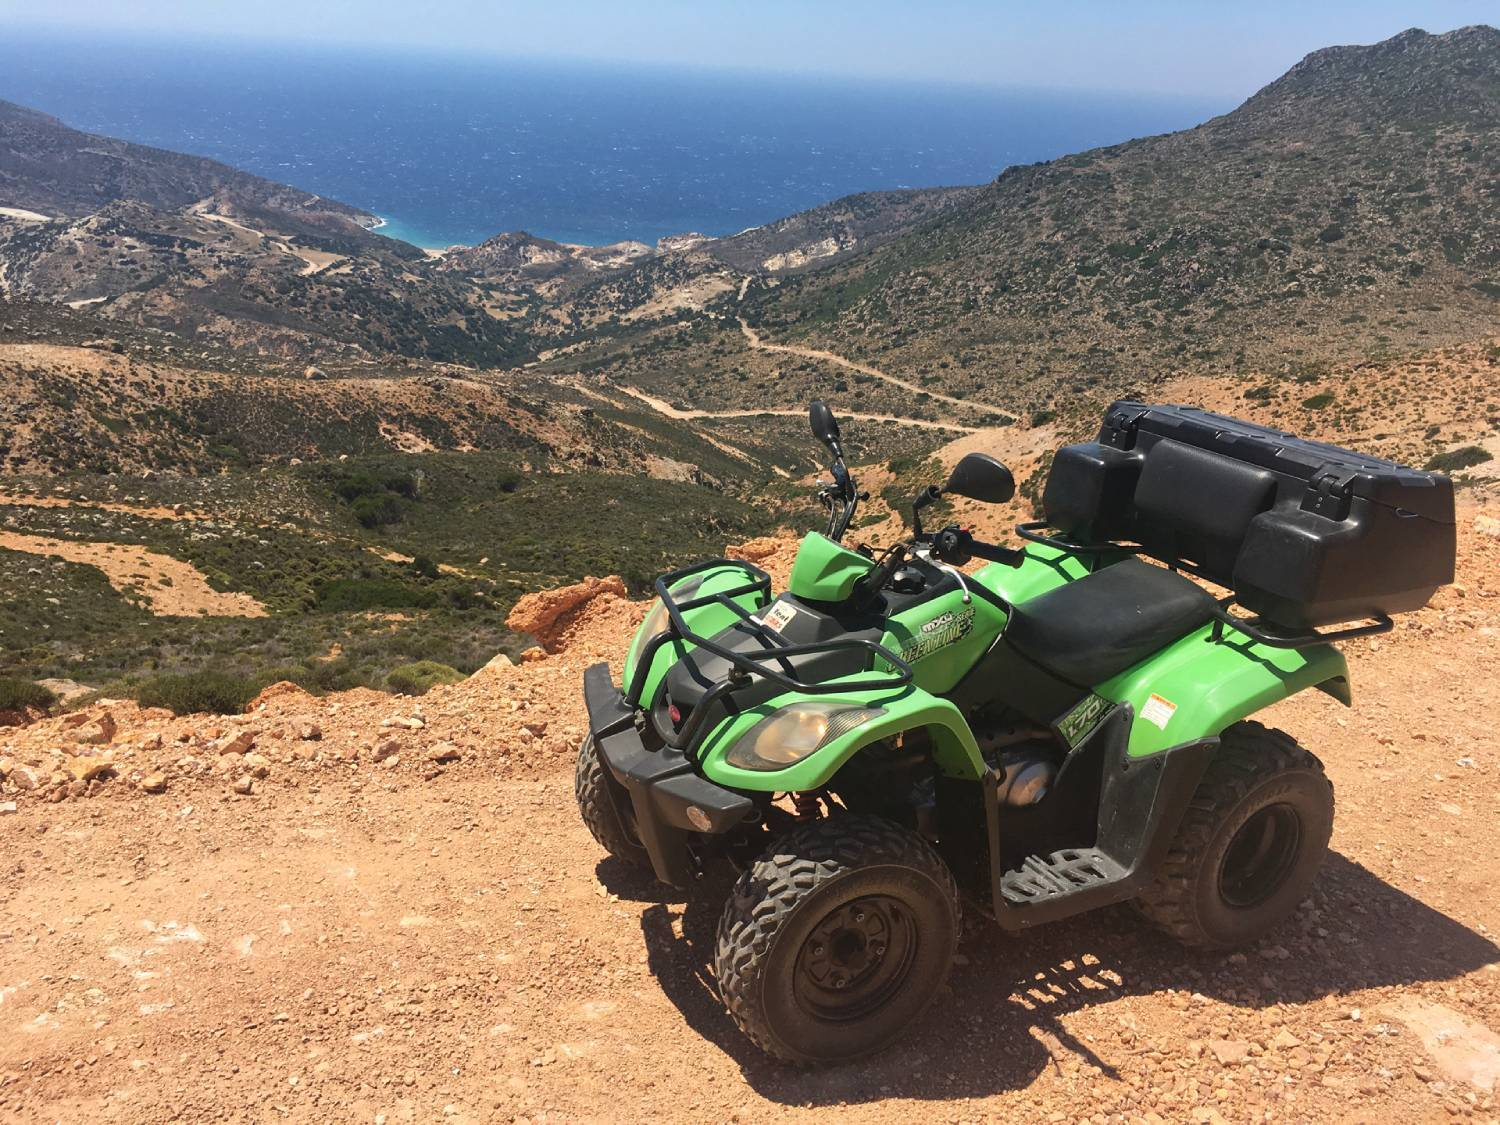 Hire An ATV - Things To Do In Milos